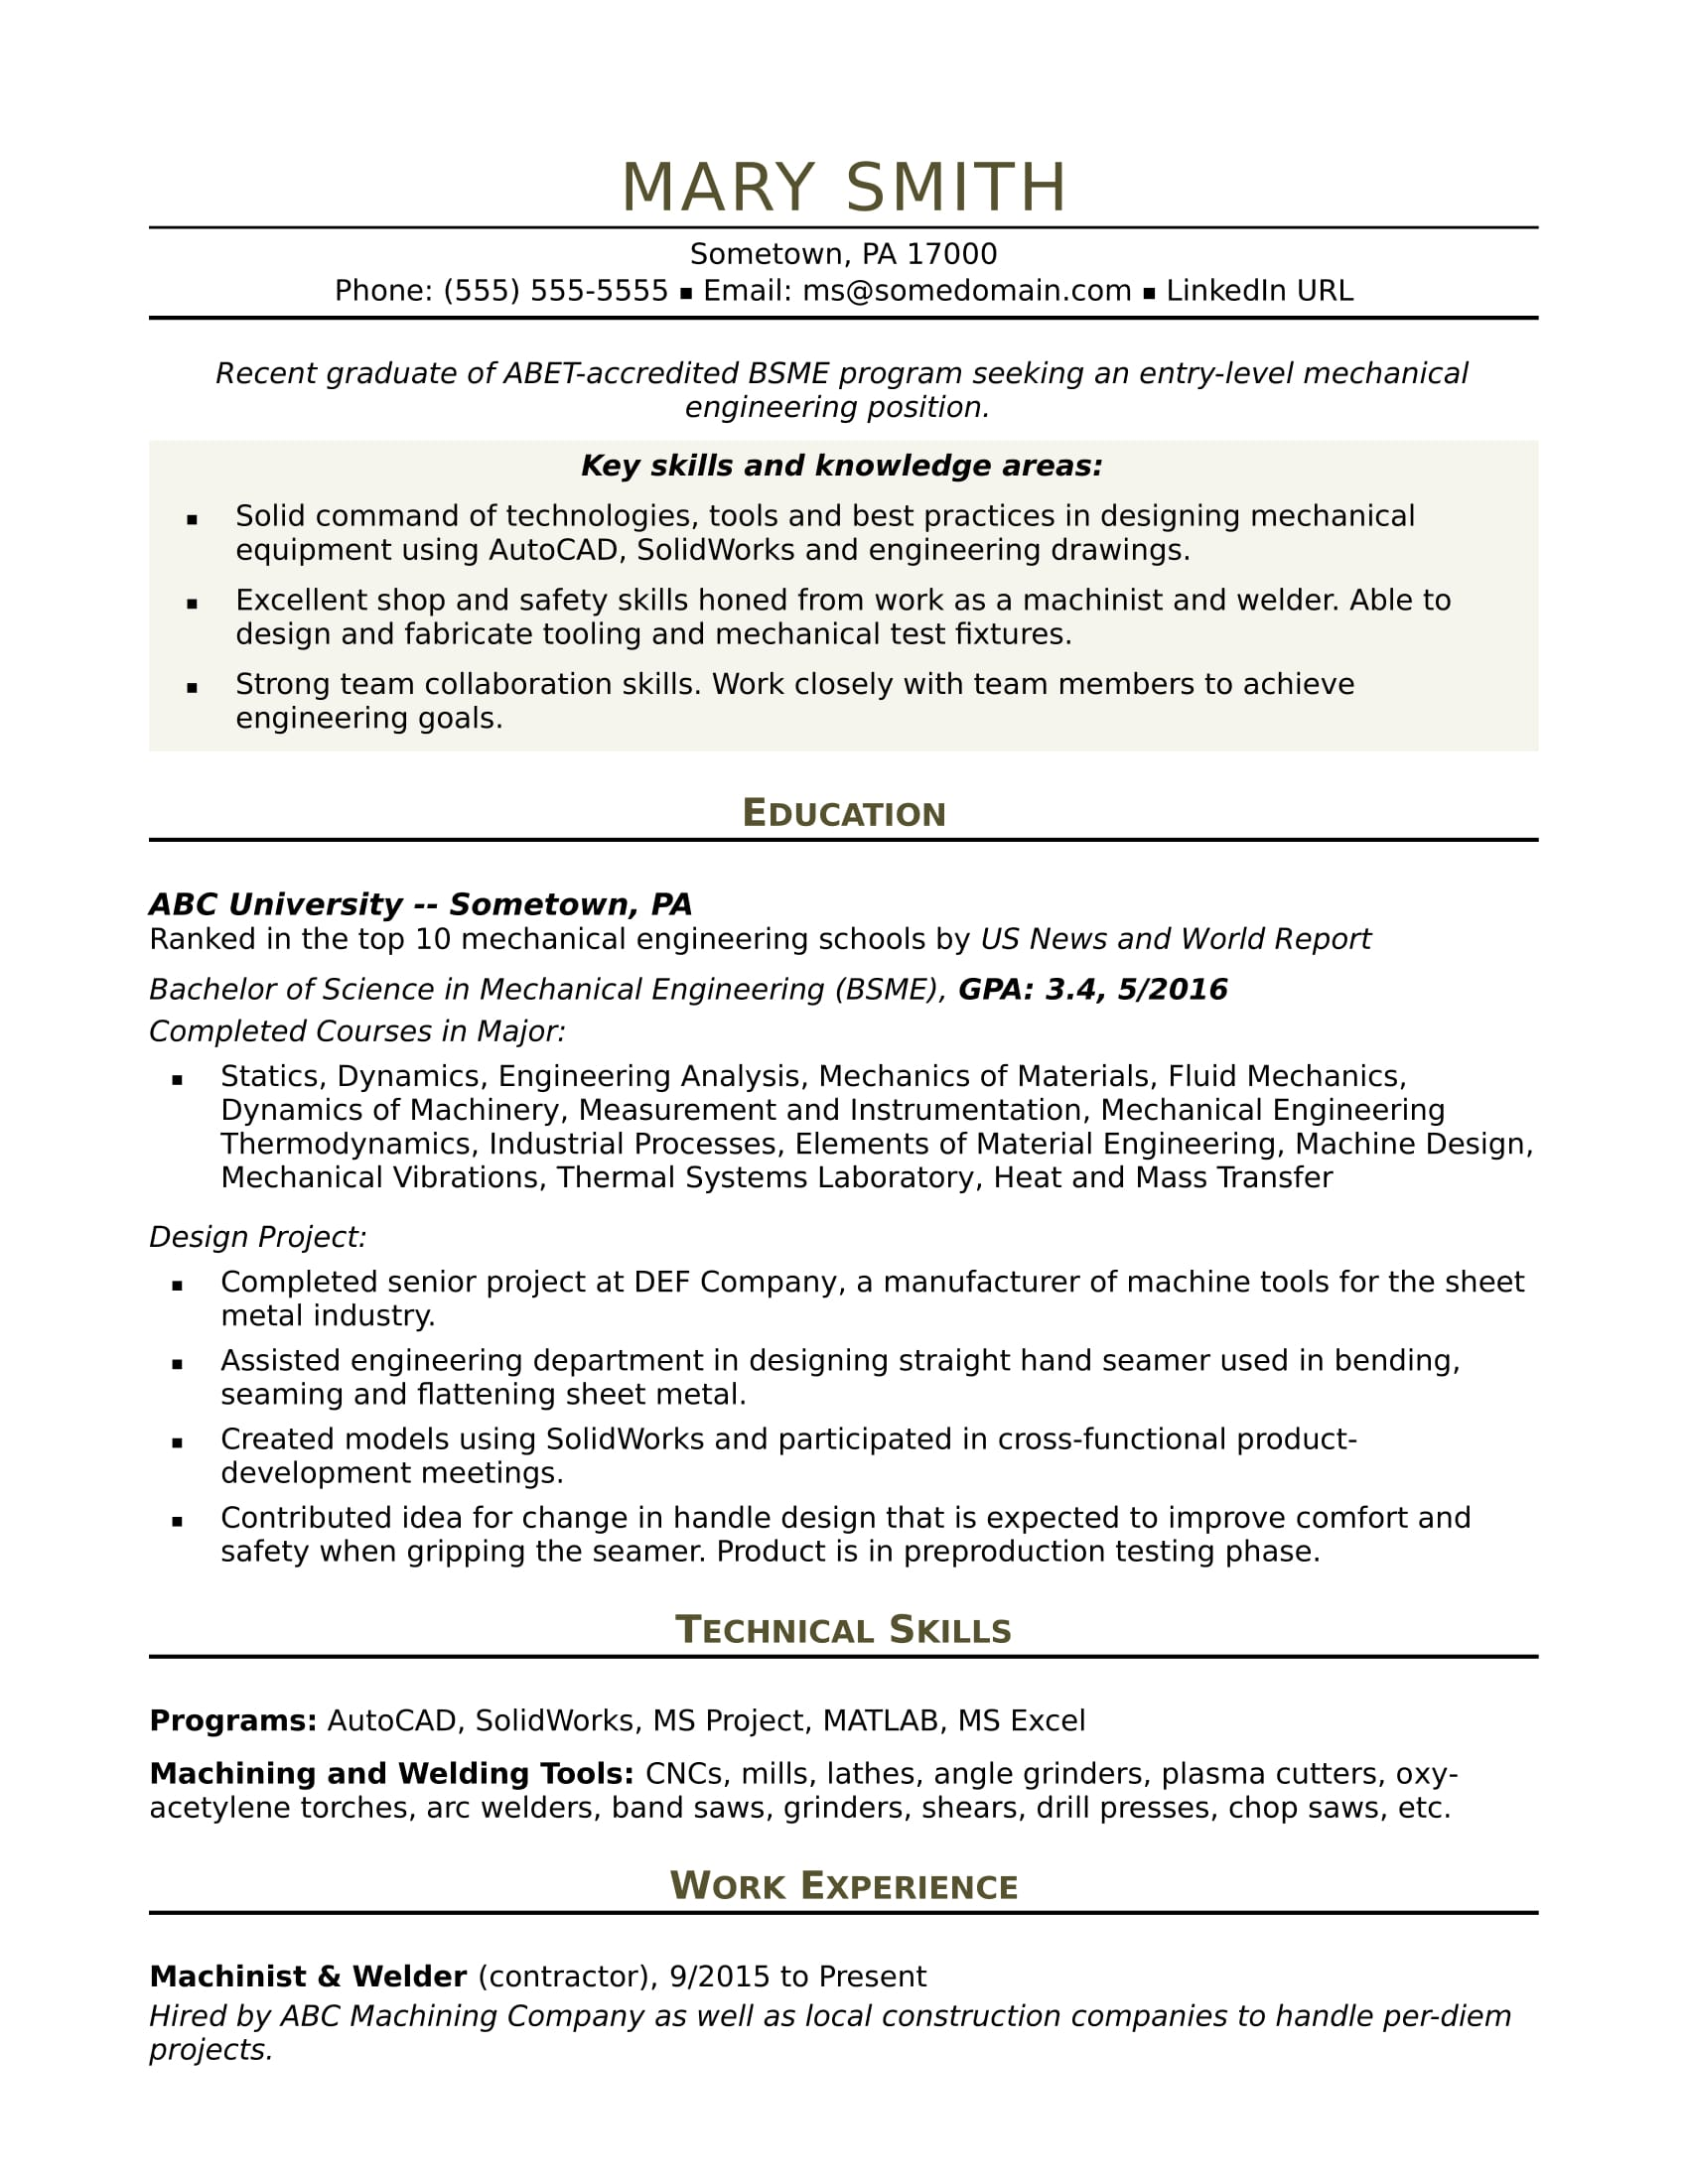 Sample Resume For An Entry Level Mechanical Engineer  Sample Resume Entry Level